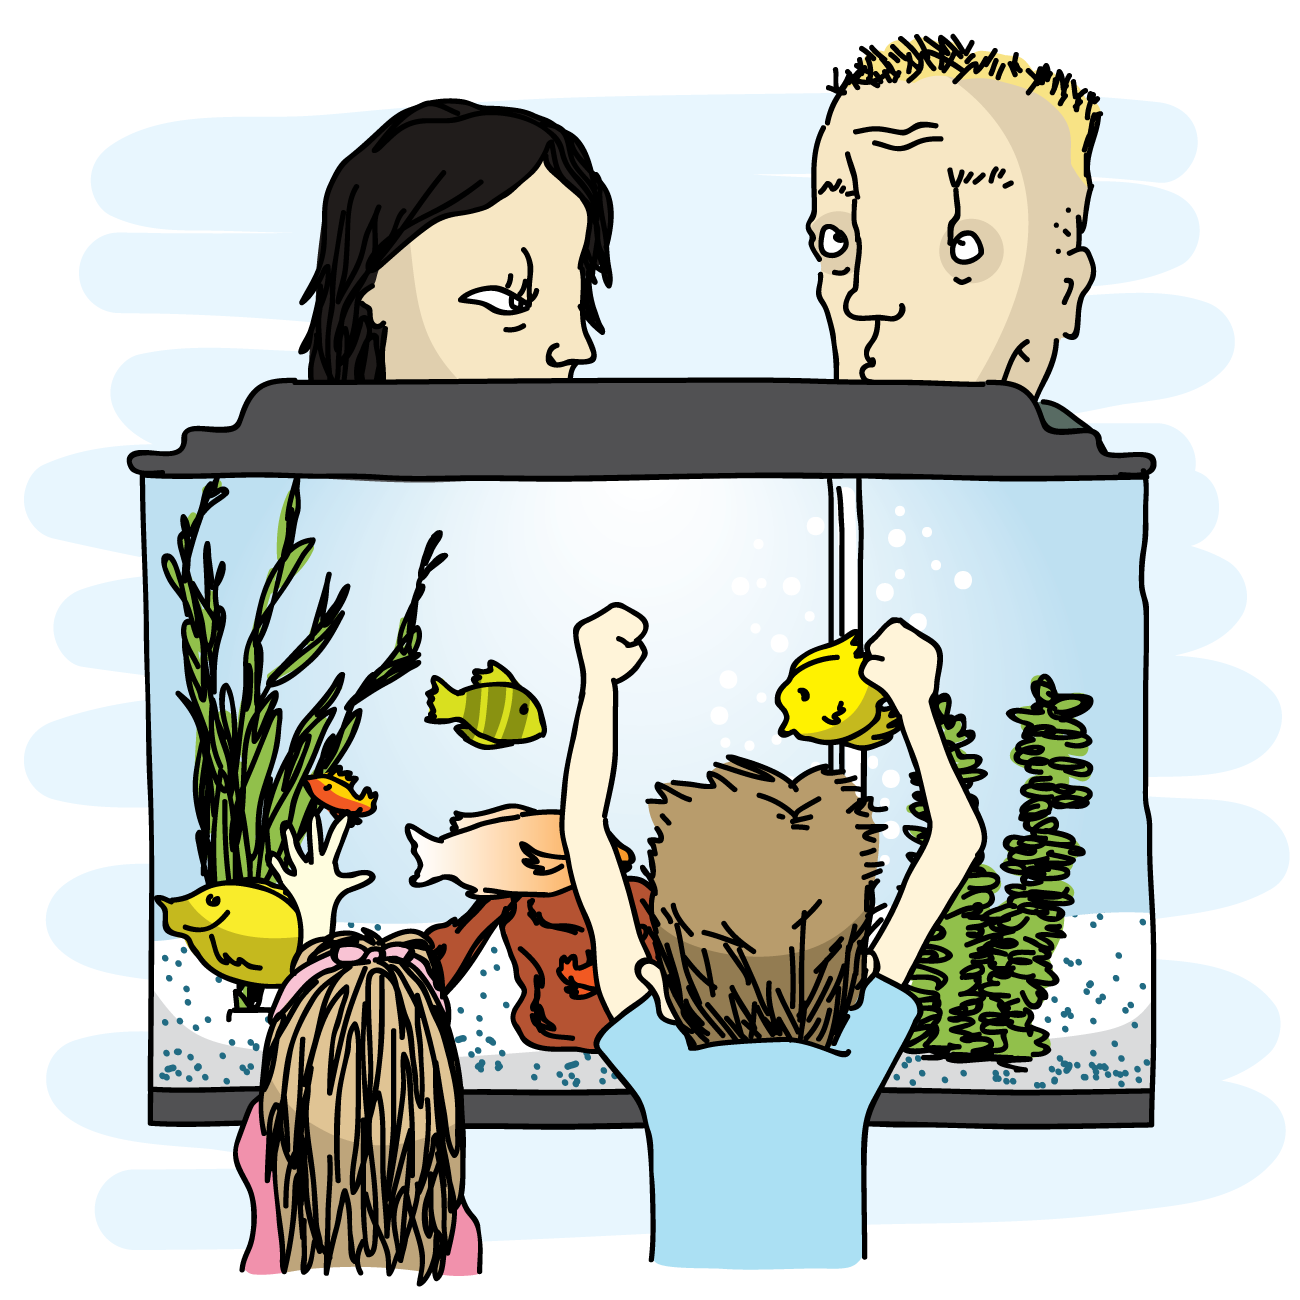 Aquarium clipart pet fish. So then stories yeah